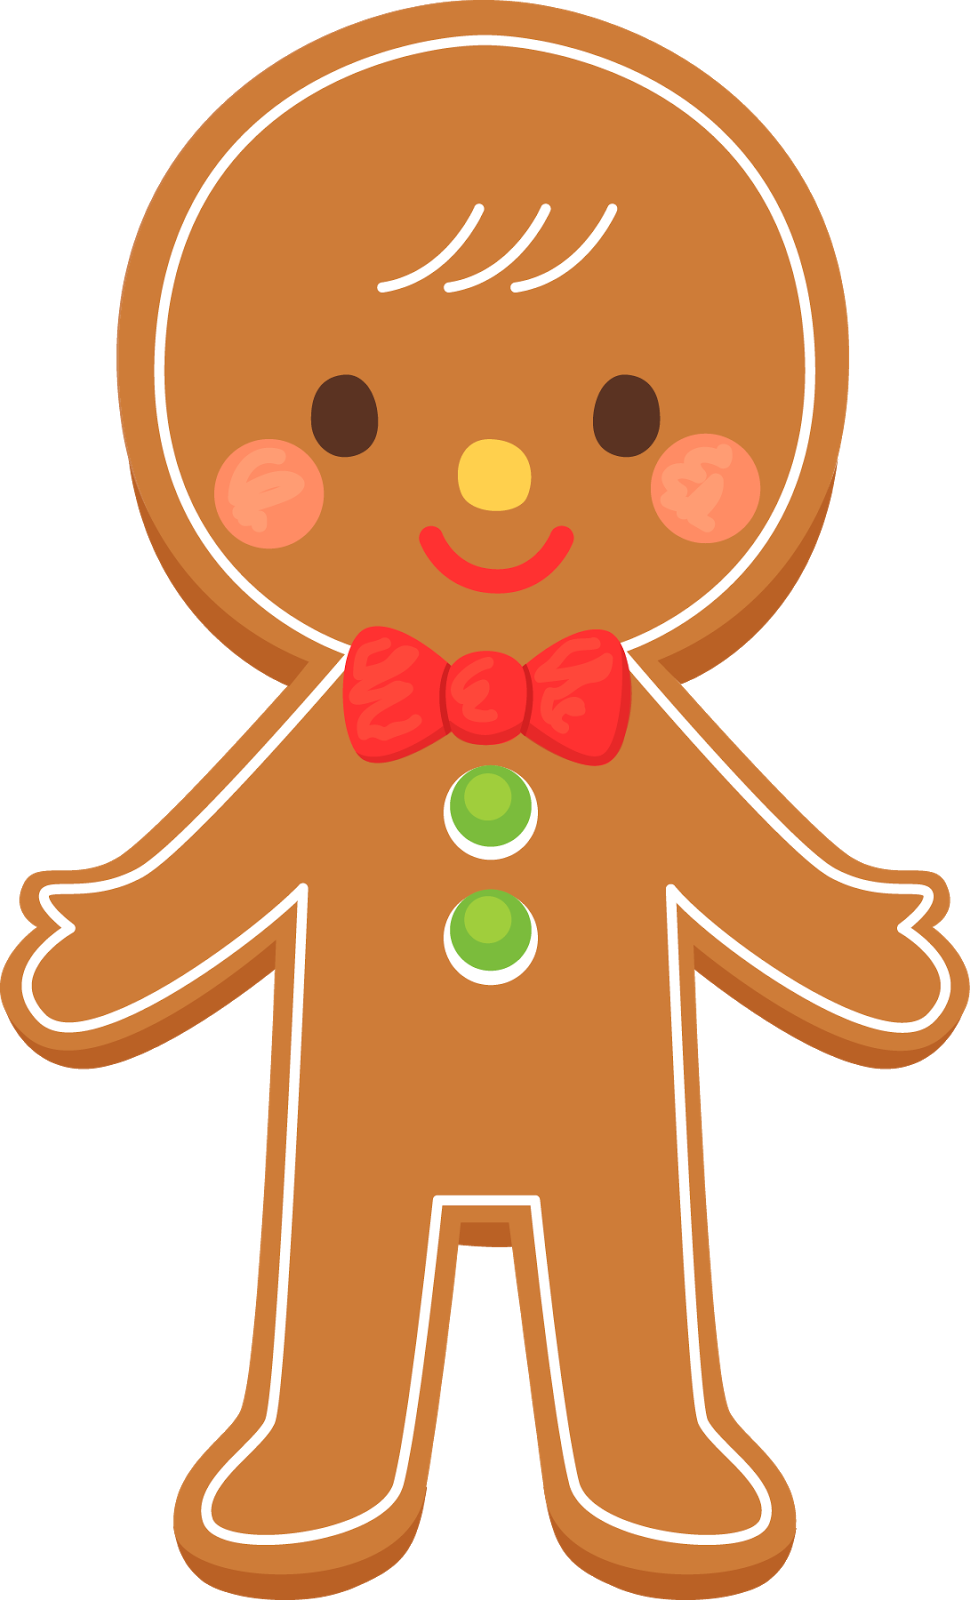 Boy turning to man clipart clip library download Free Gingerbread Man Clipart Pictures - Clipartix clip library download